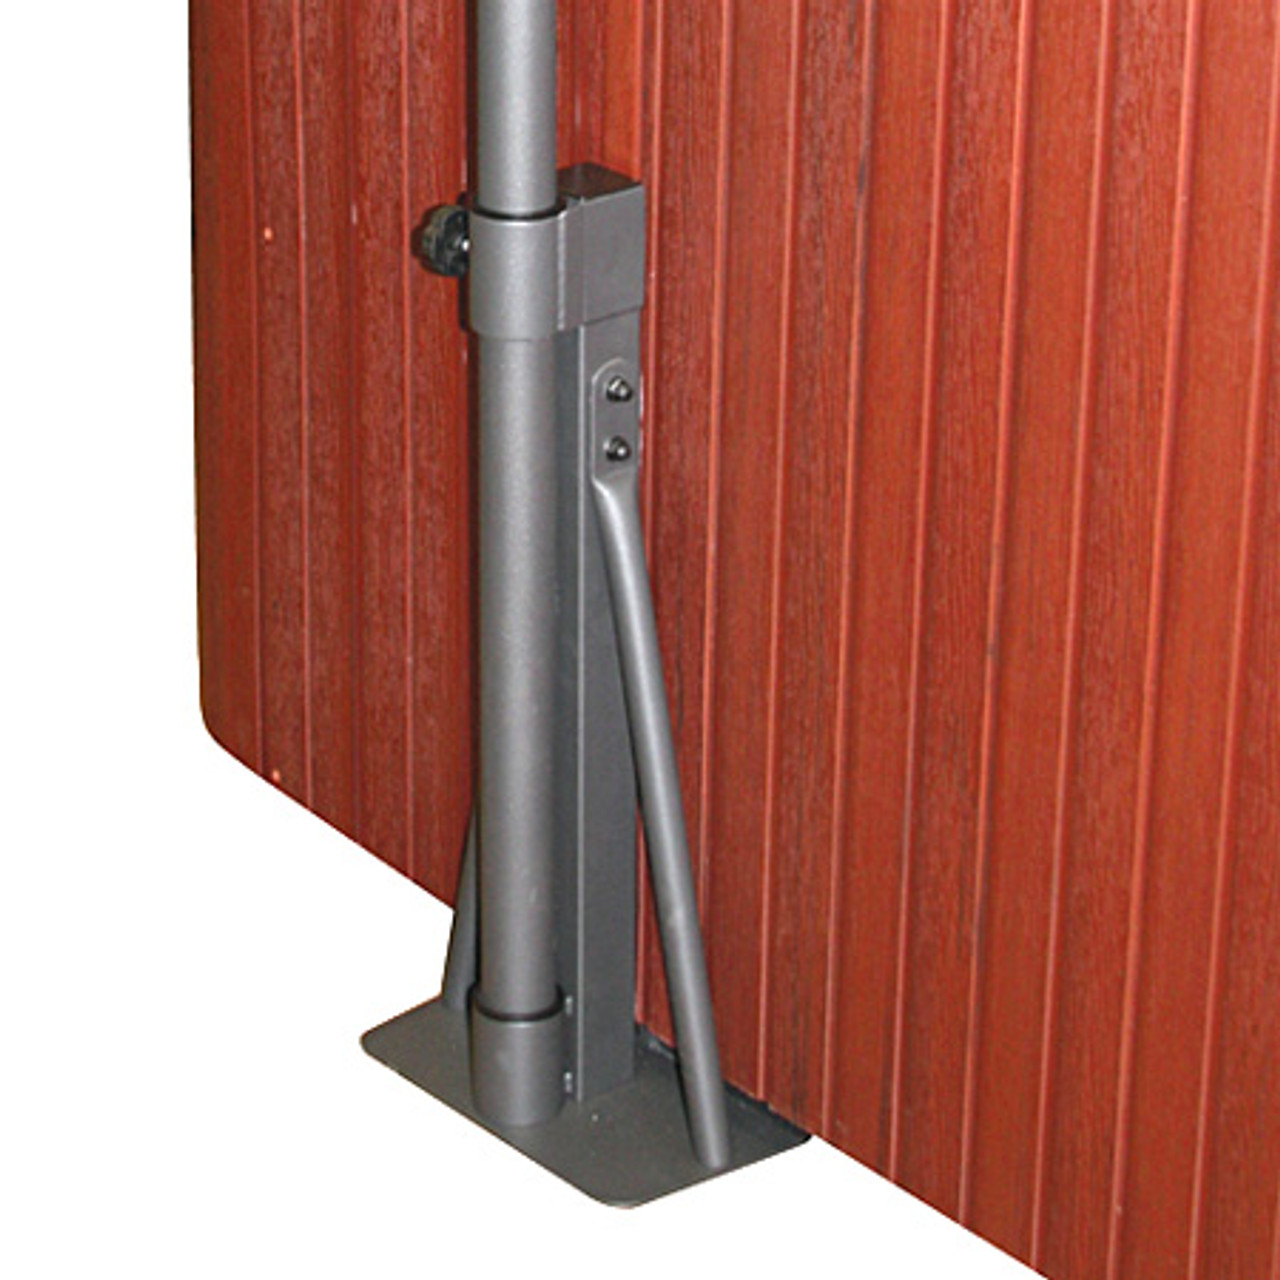 Master Spa - CV90208 - Cover Valet - The Spa Side Handrail - Base View